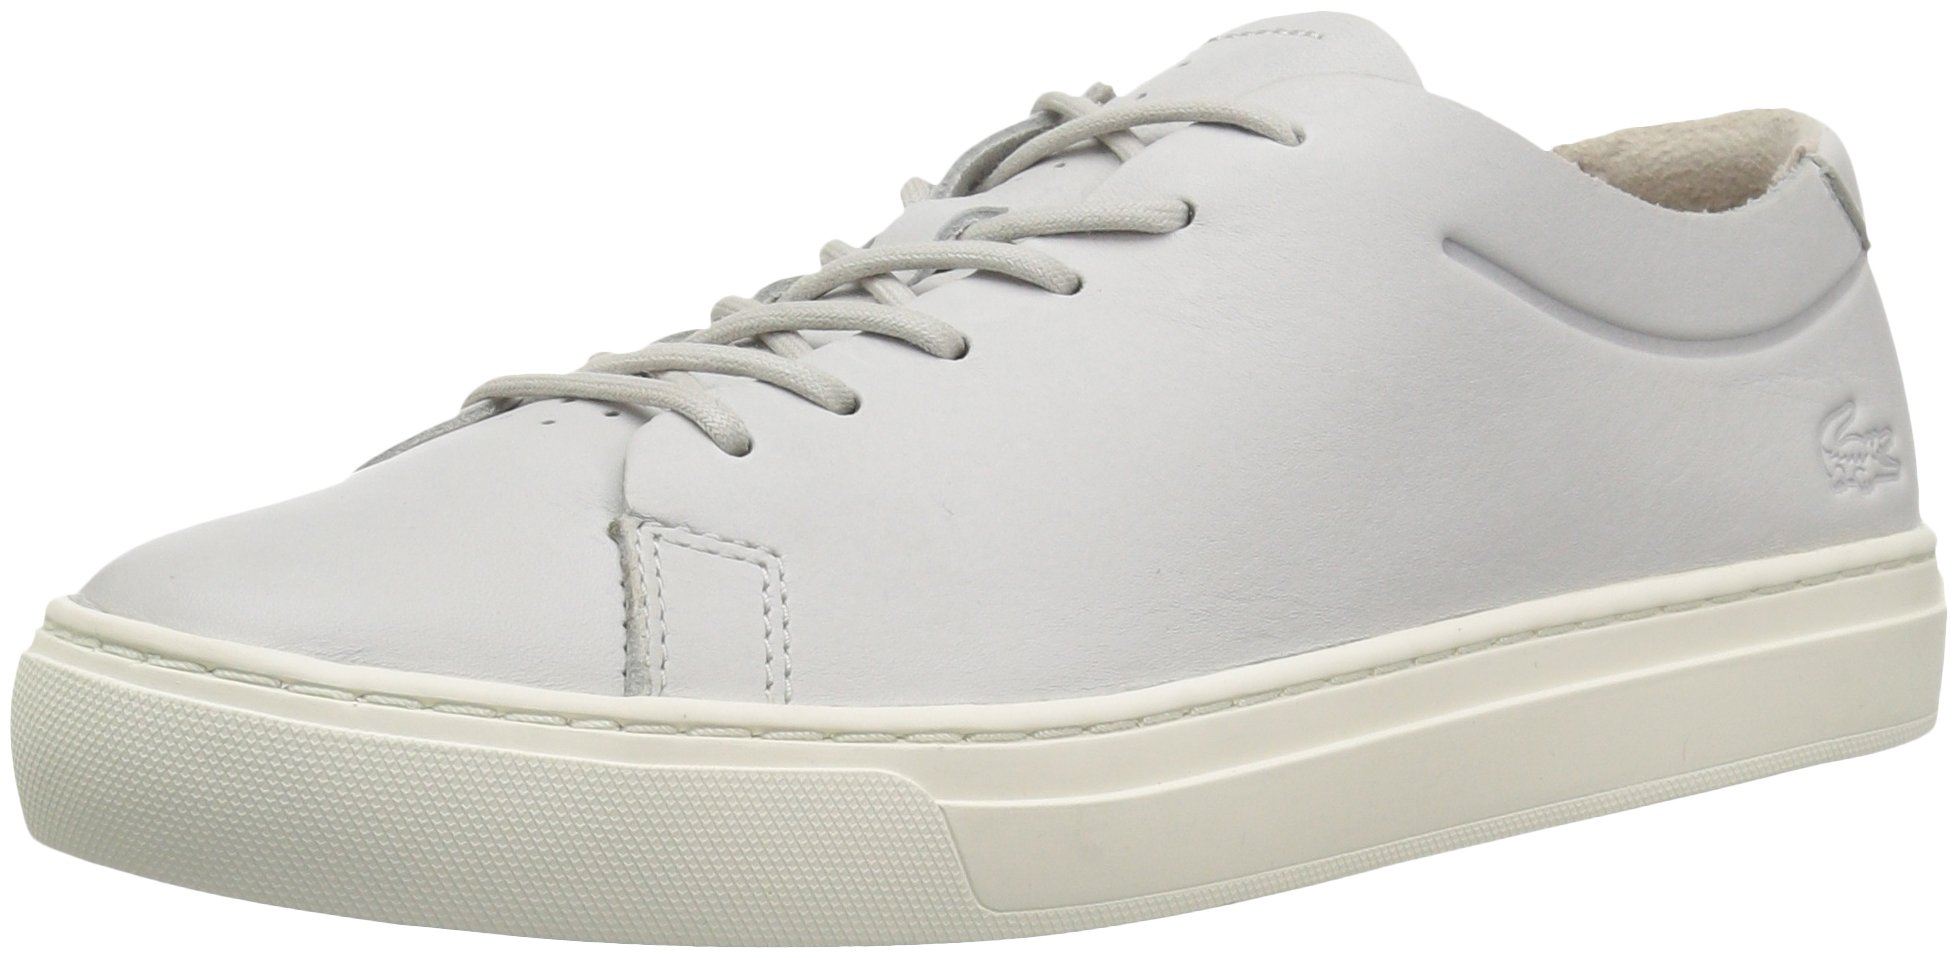 Lacoste Women's L.12.12 Unlined Sneakers,Light Grey/Off White Leather,5.5 M US